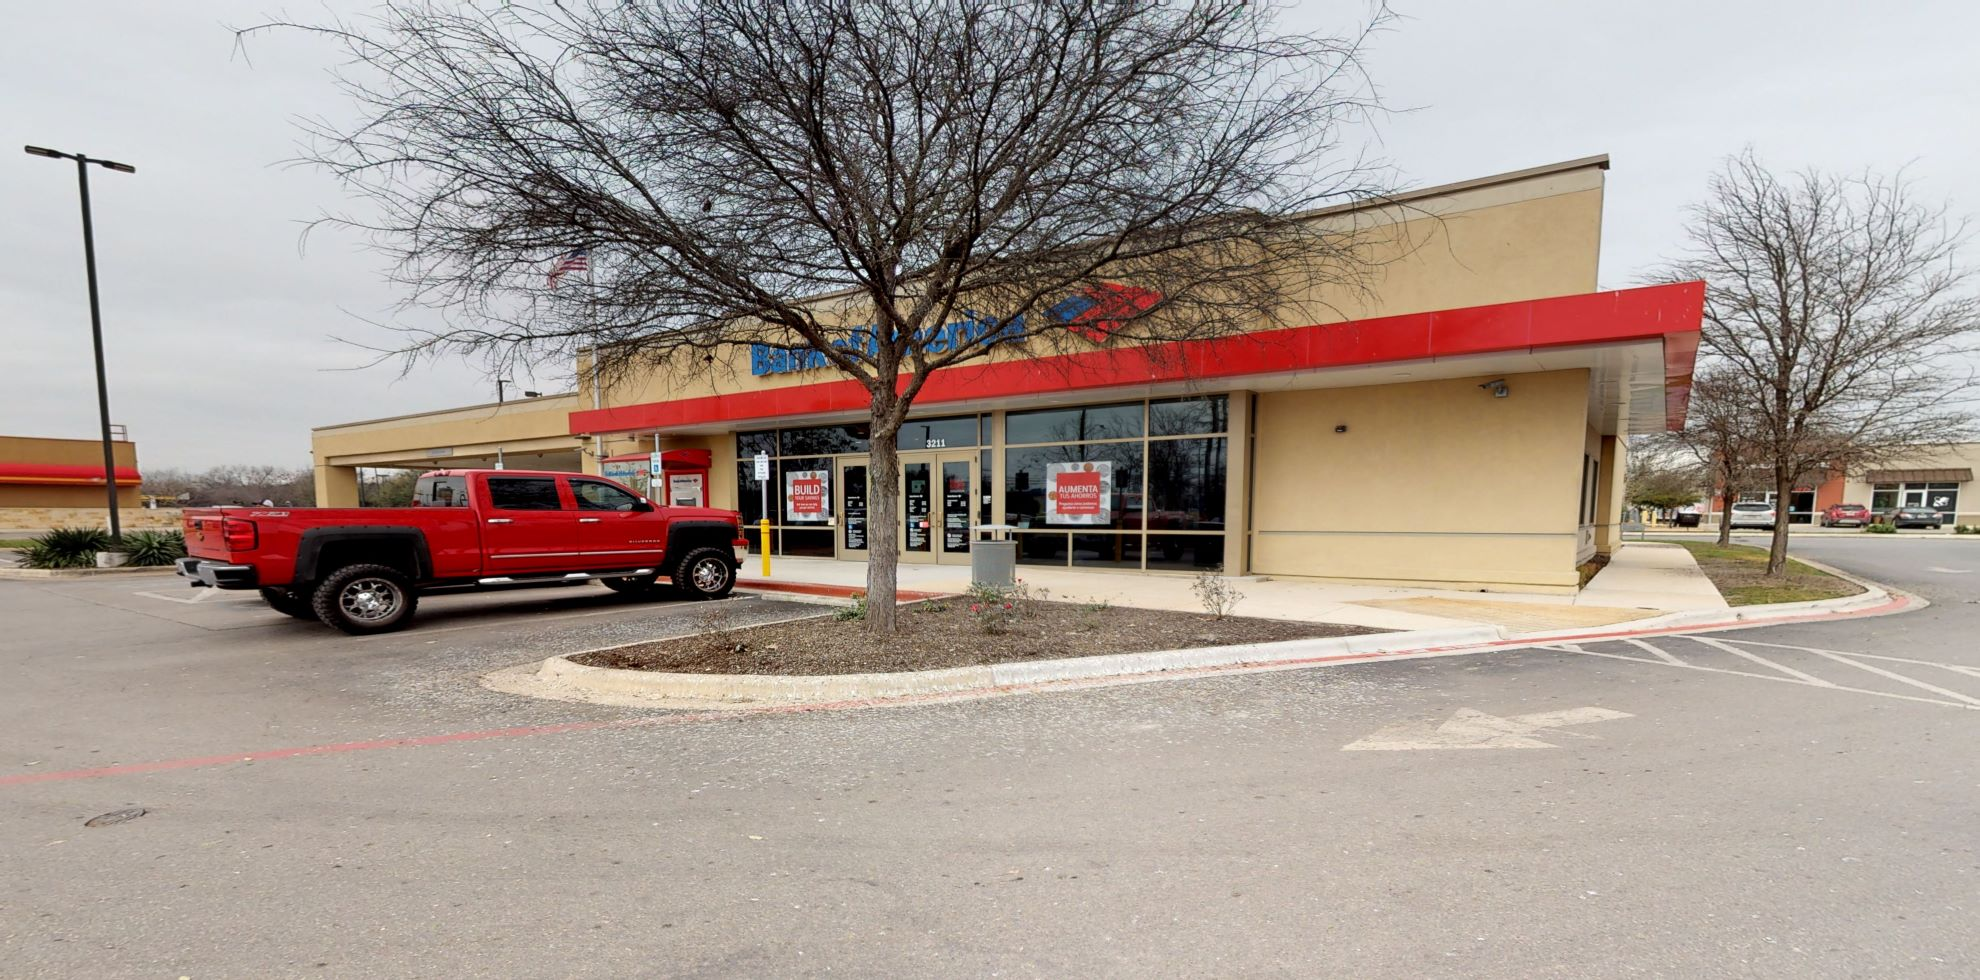 Bank of America financial center with drive-thru ATM   3211 SW Military Dr, San Antonio, TX 78211